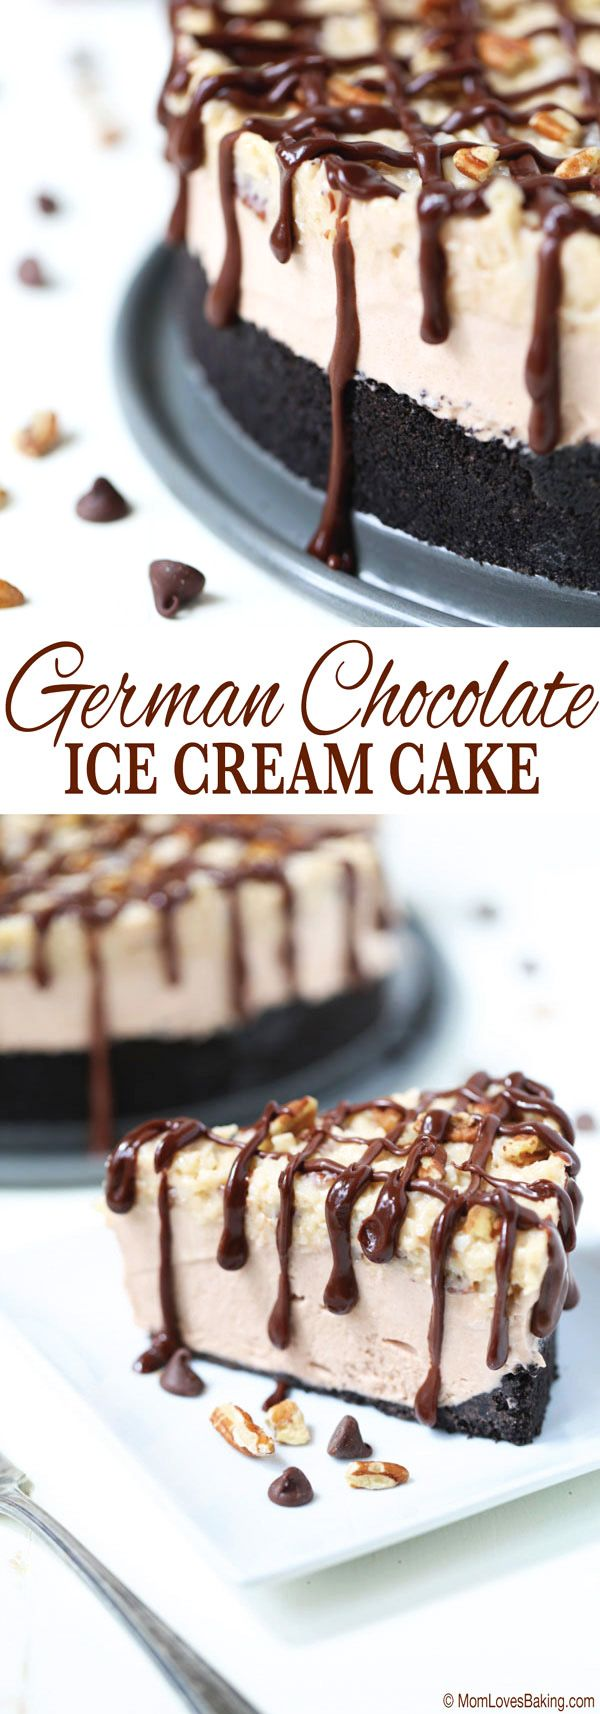 It is super hot outside and the perfect time to make this German Chocolate Ice Cream Pie. Find the recipe on http://momlovesbaking.com /search/?q=%23CuriousCreamery&rs=hashtag /search/?q=%23ad&rs=hashtag @Walmart @CuriousCreamery